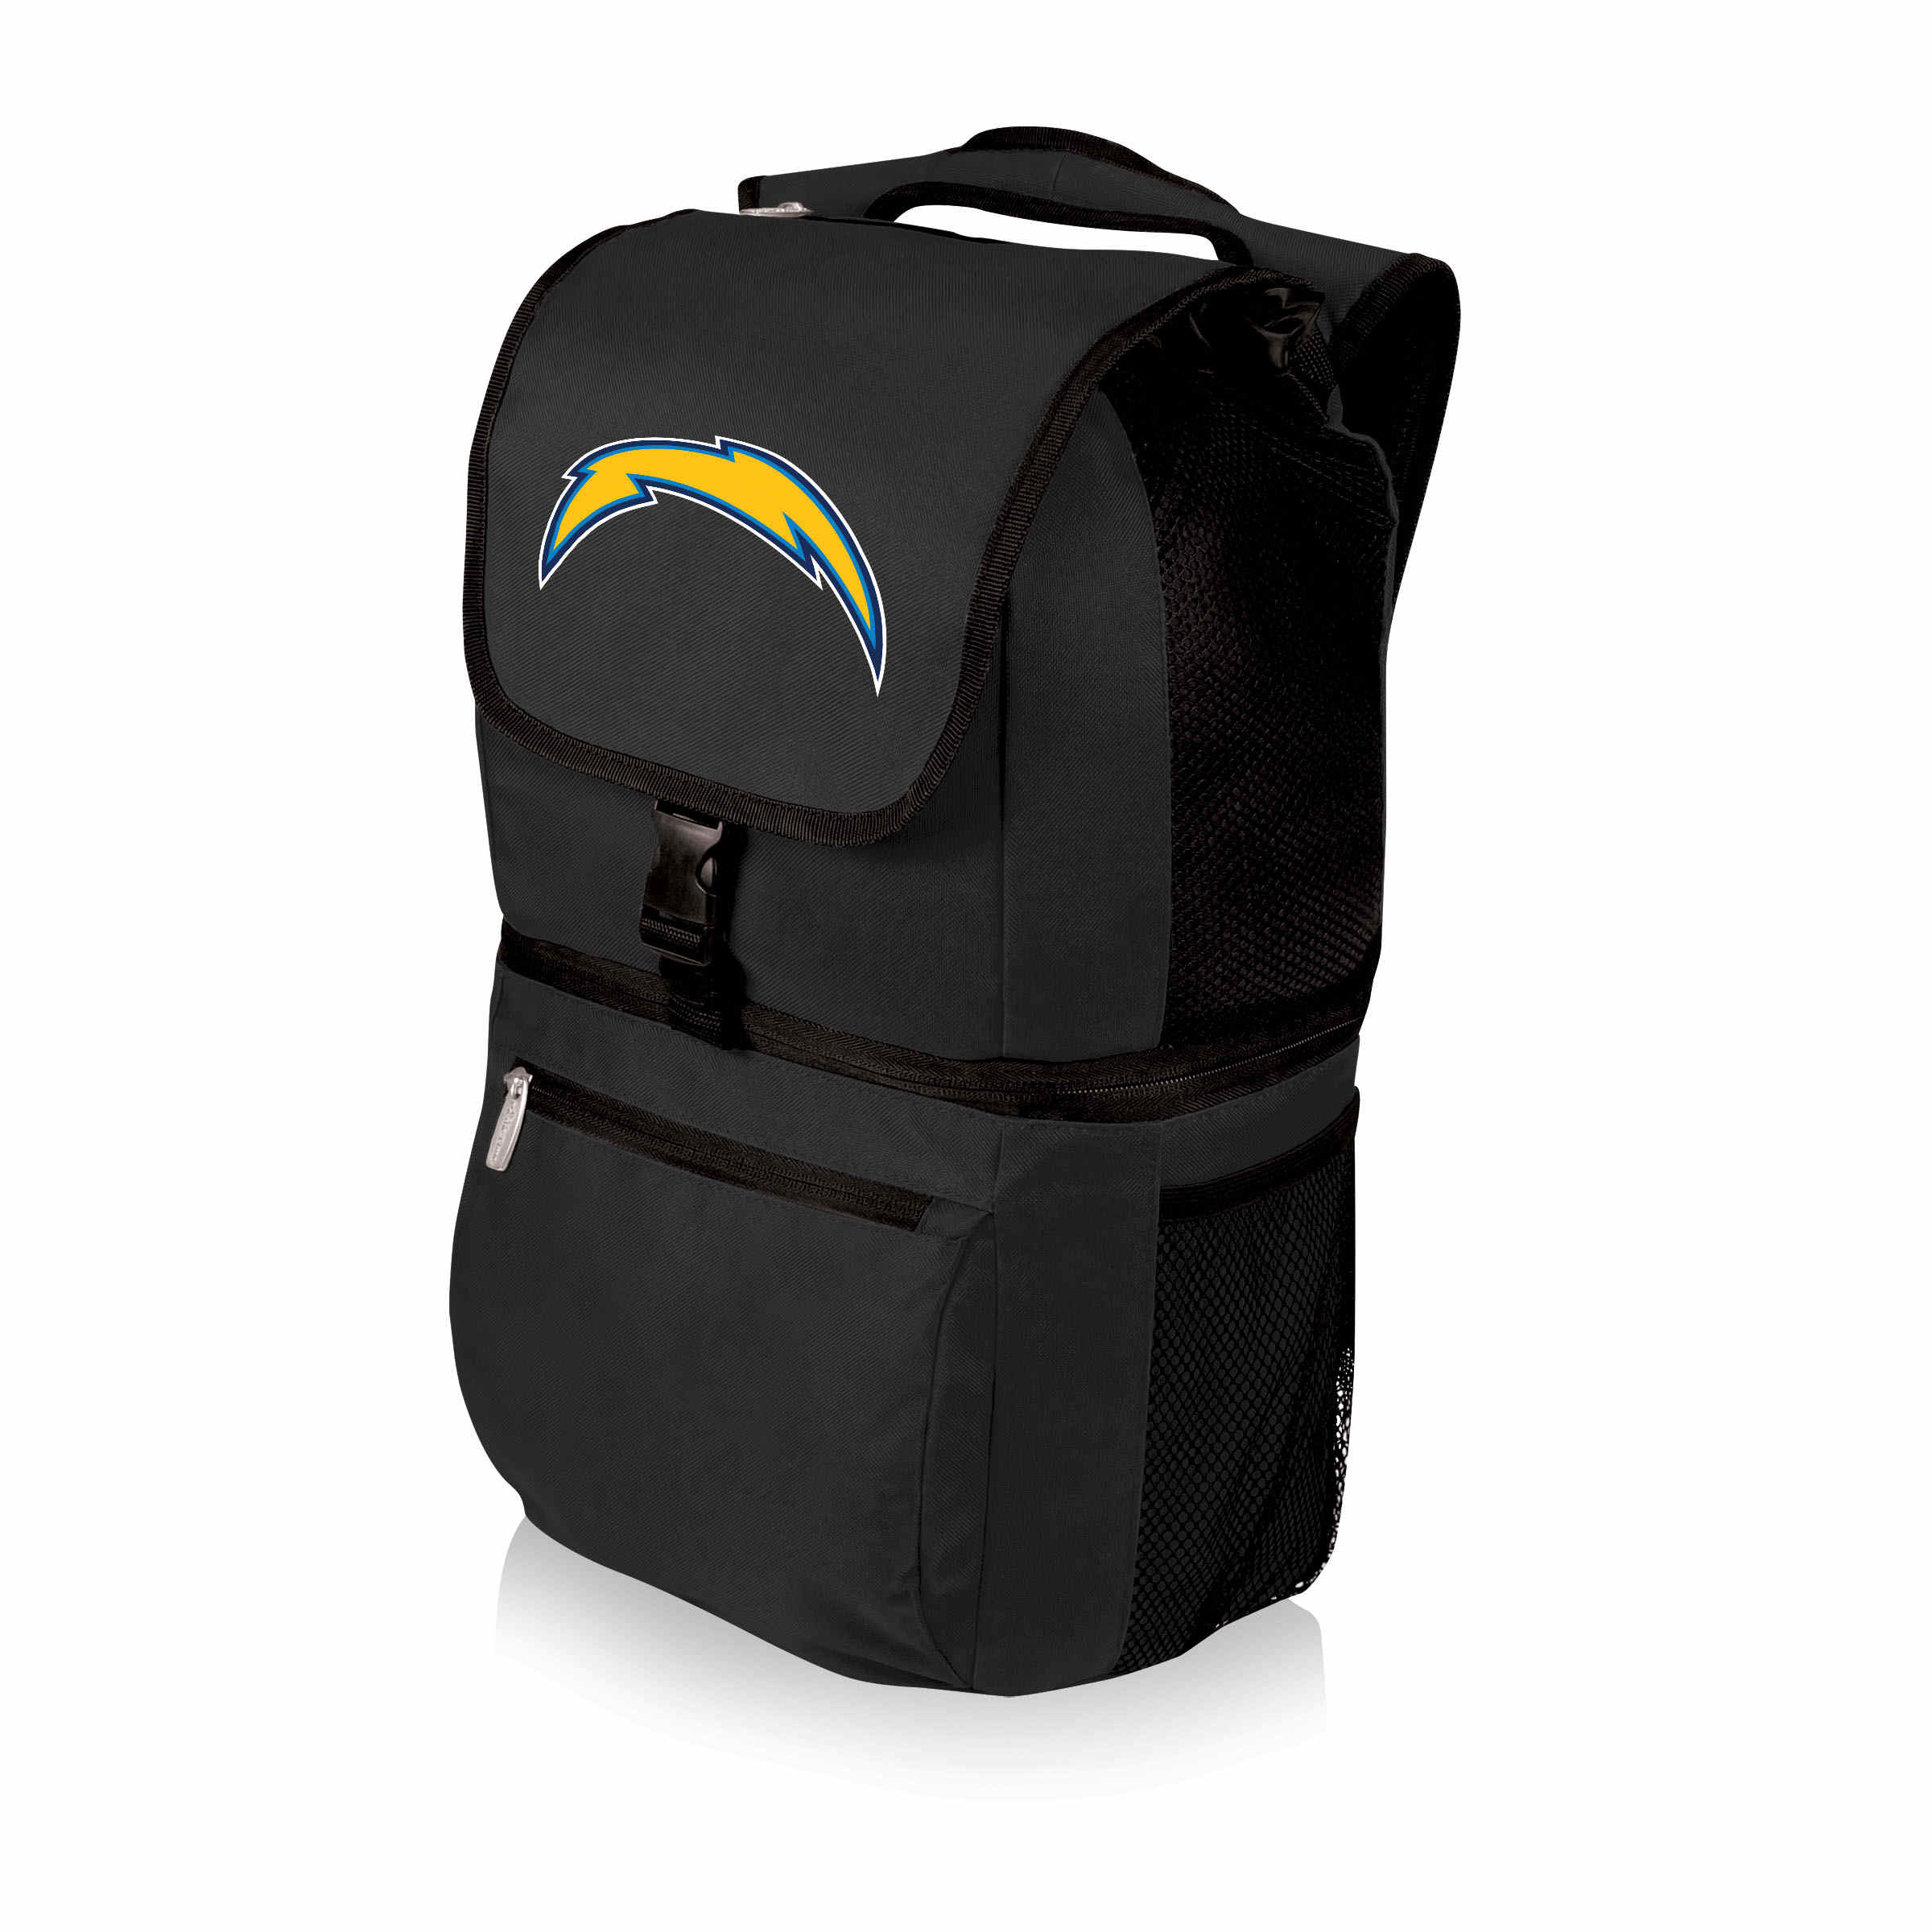 Picnic Time Nfl Zuma San Diego Chargers